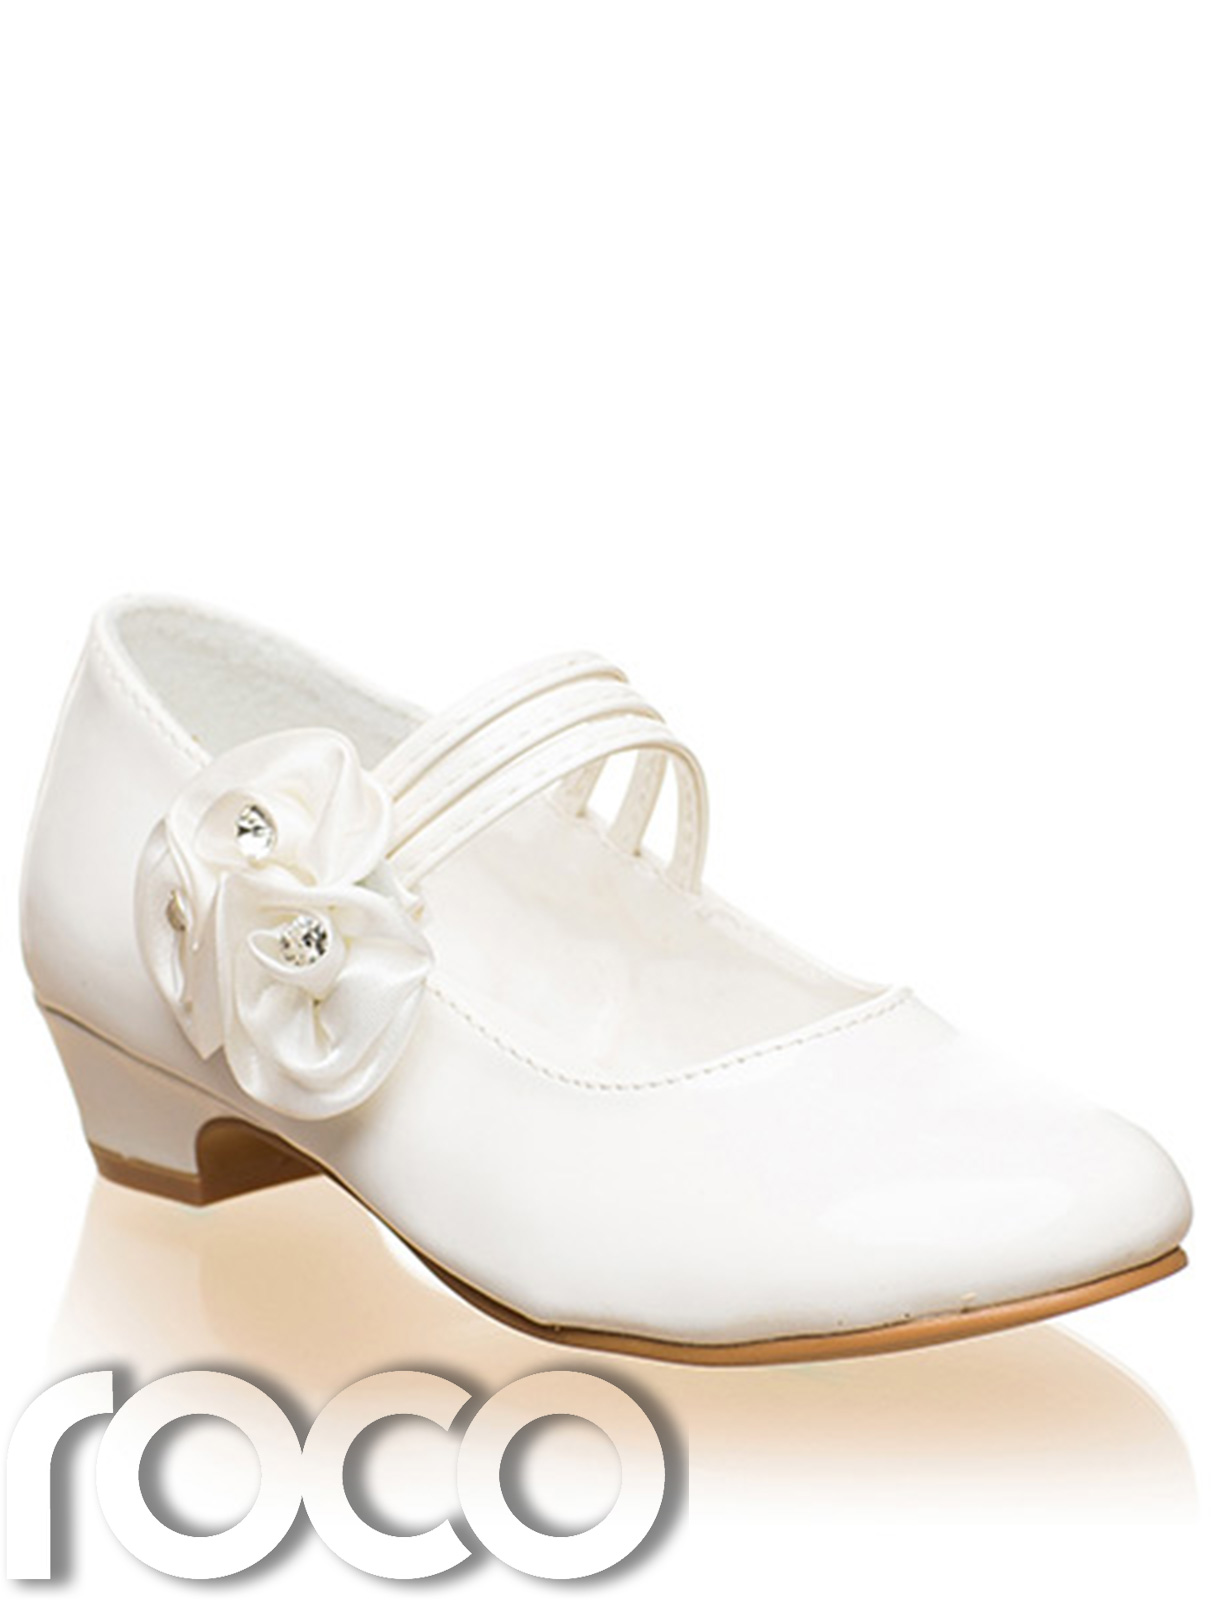 Girls Ivory Shoes, Communion Shoes, Prom Shoes, Flower